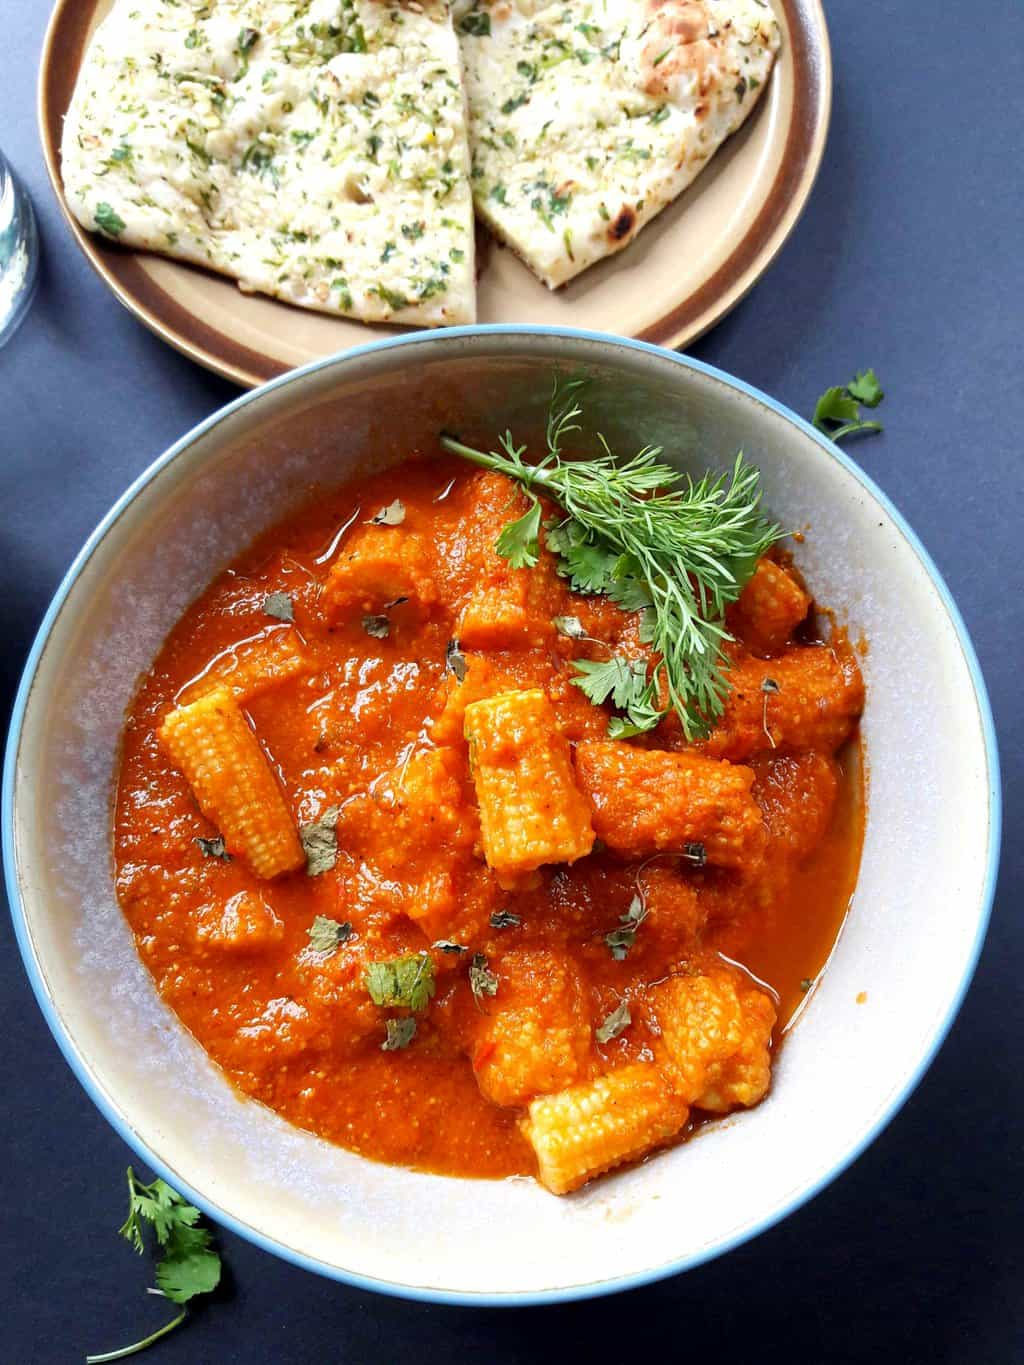 Baby Corn Masala served with cilantro and fenugreek leaves along with garlic naan.